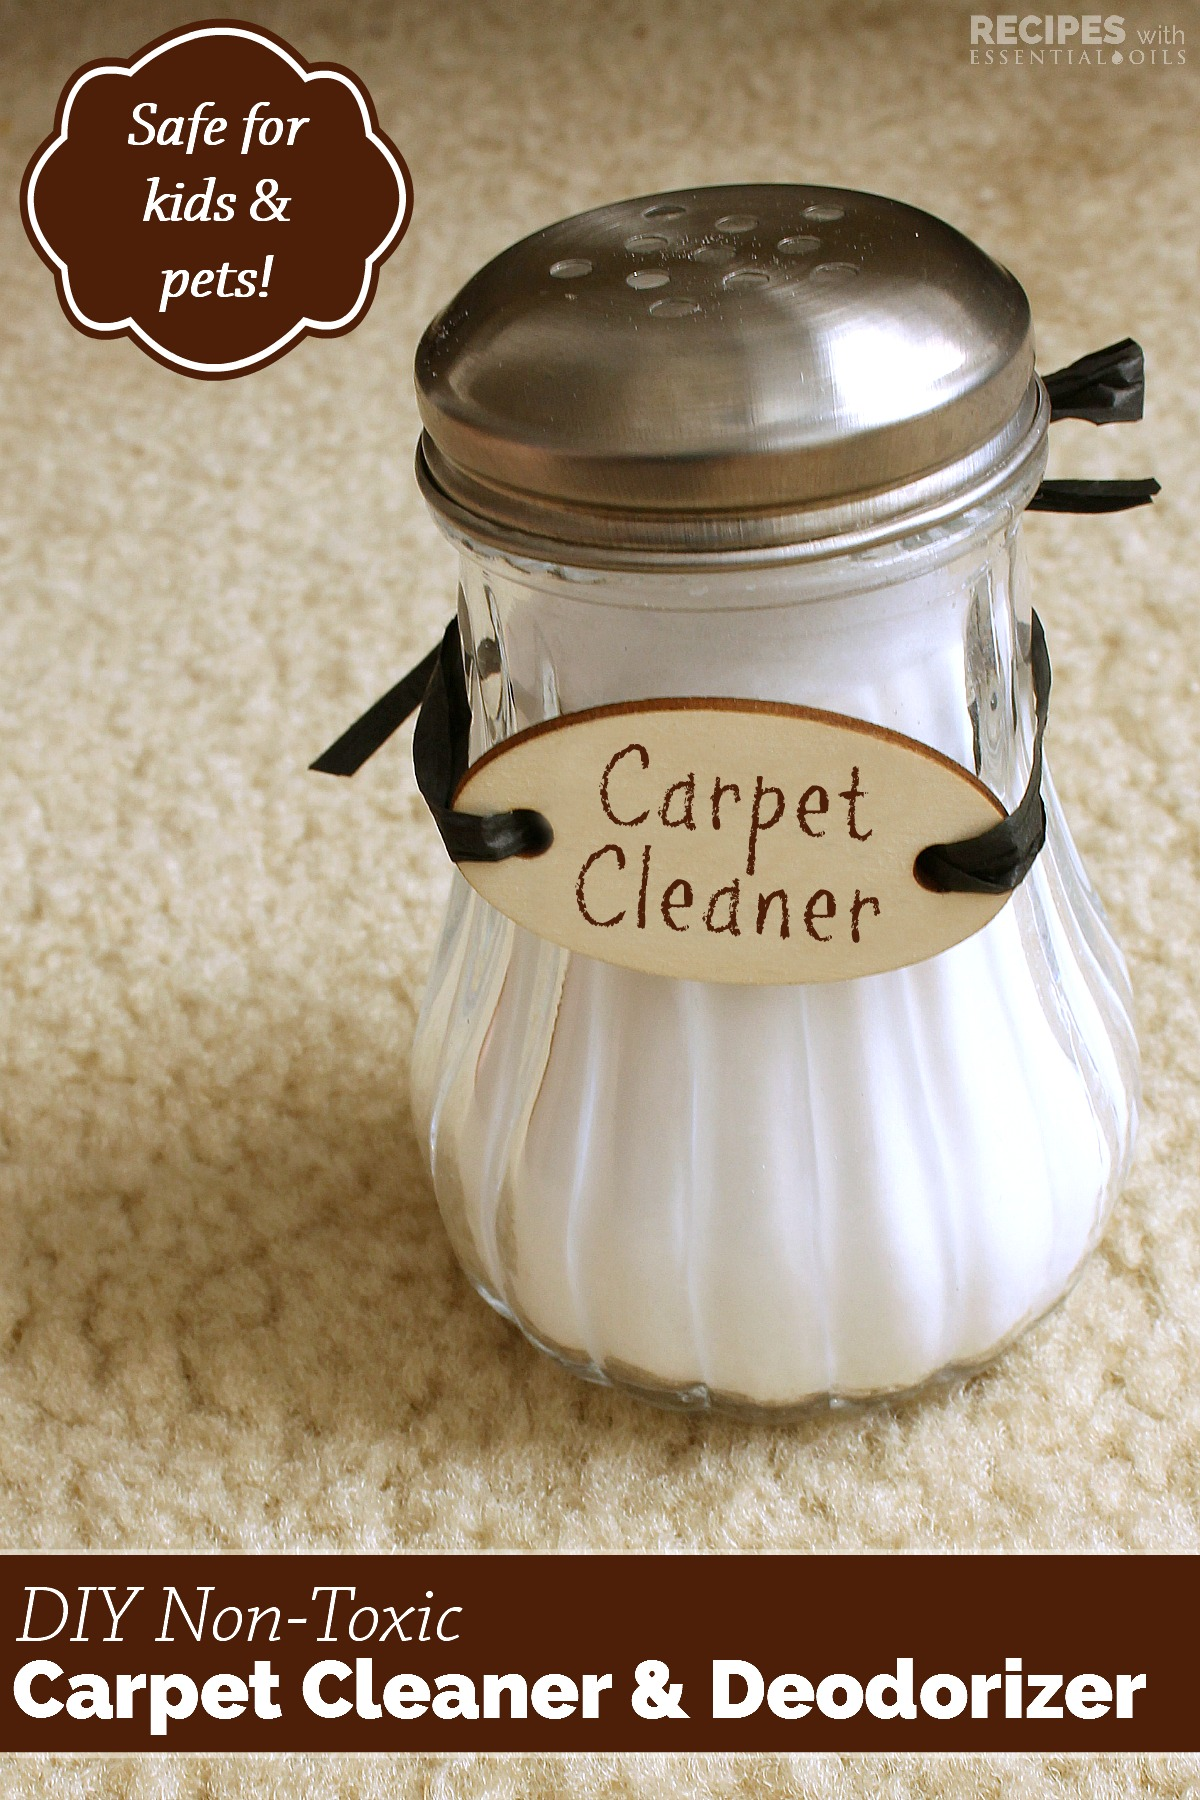 Carpet Cleaner and Deodorizer - Recipes with Essential Oils